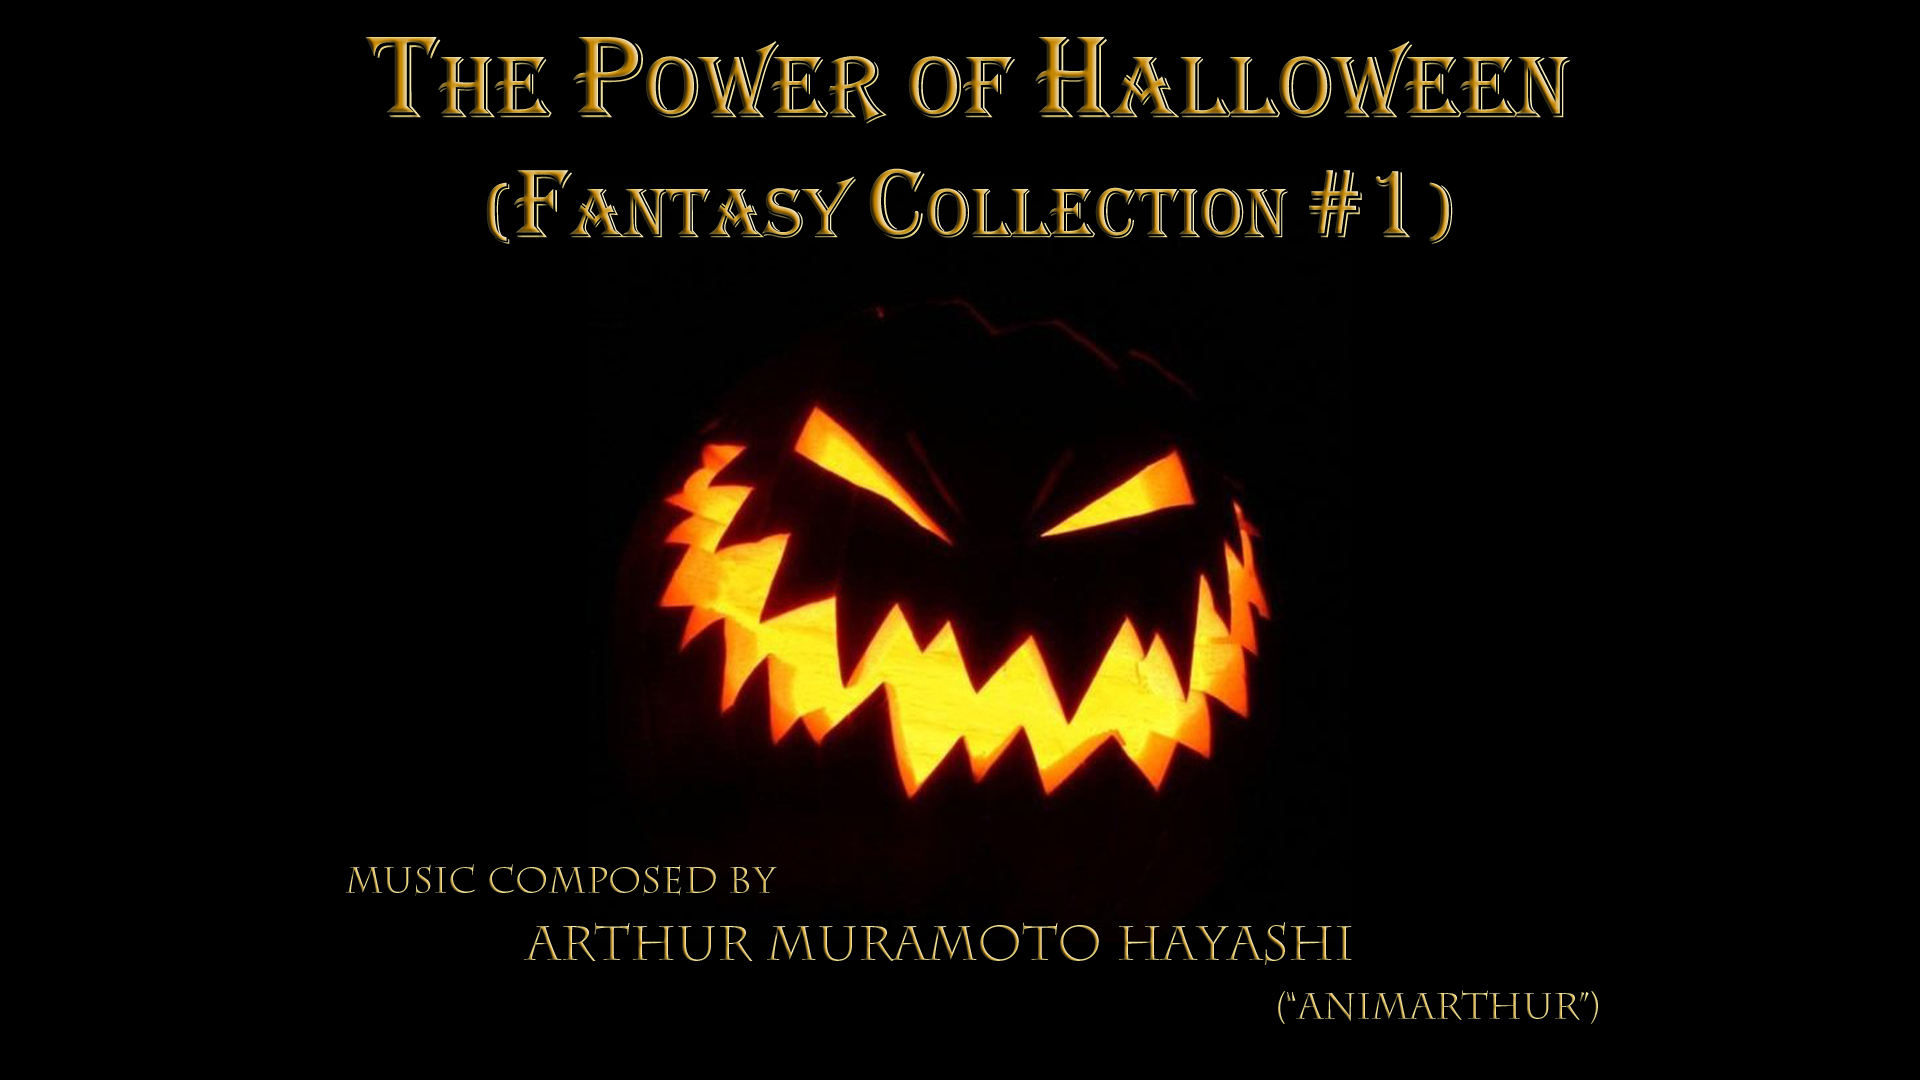 #1 Fantasy Collection